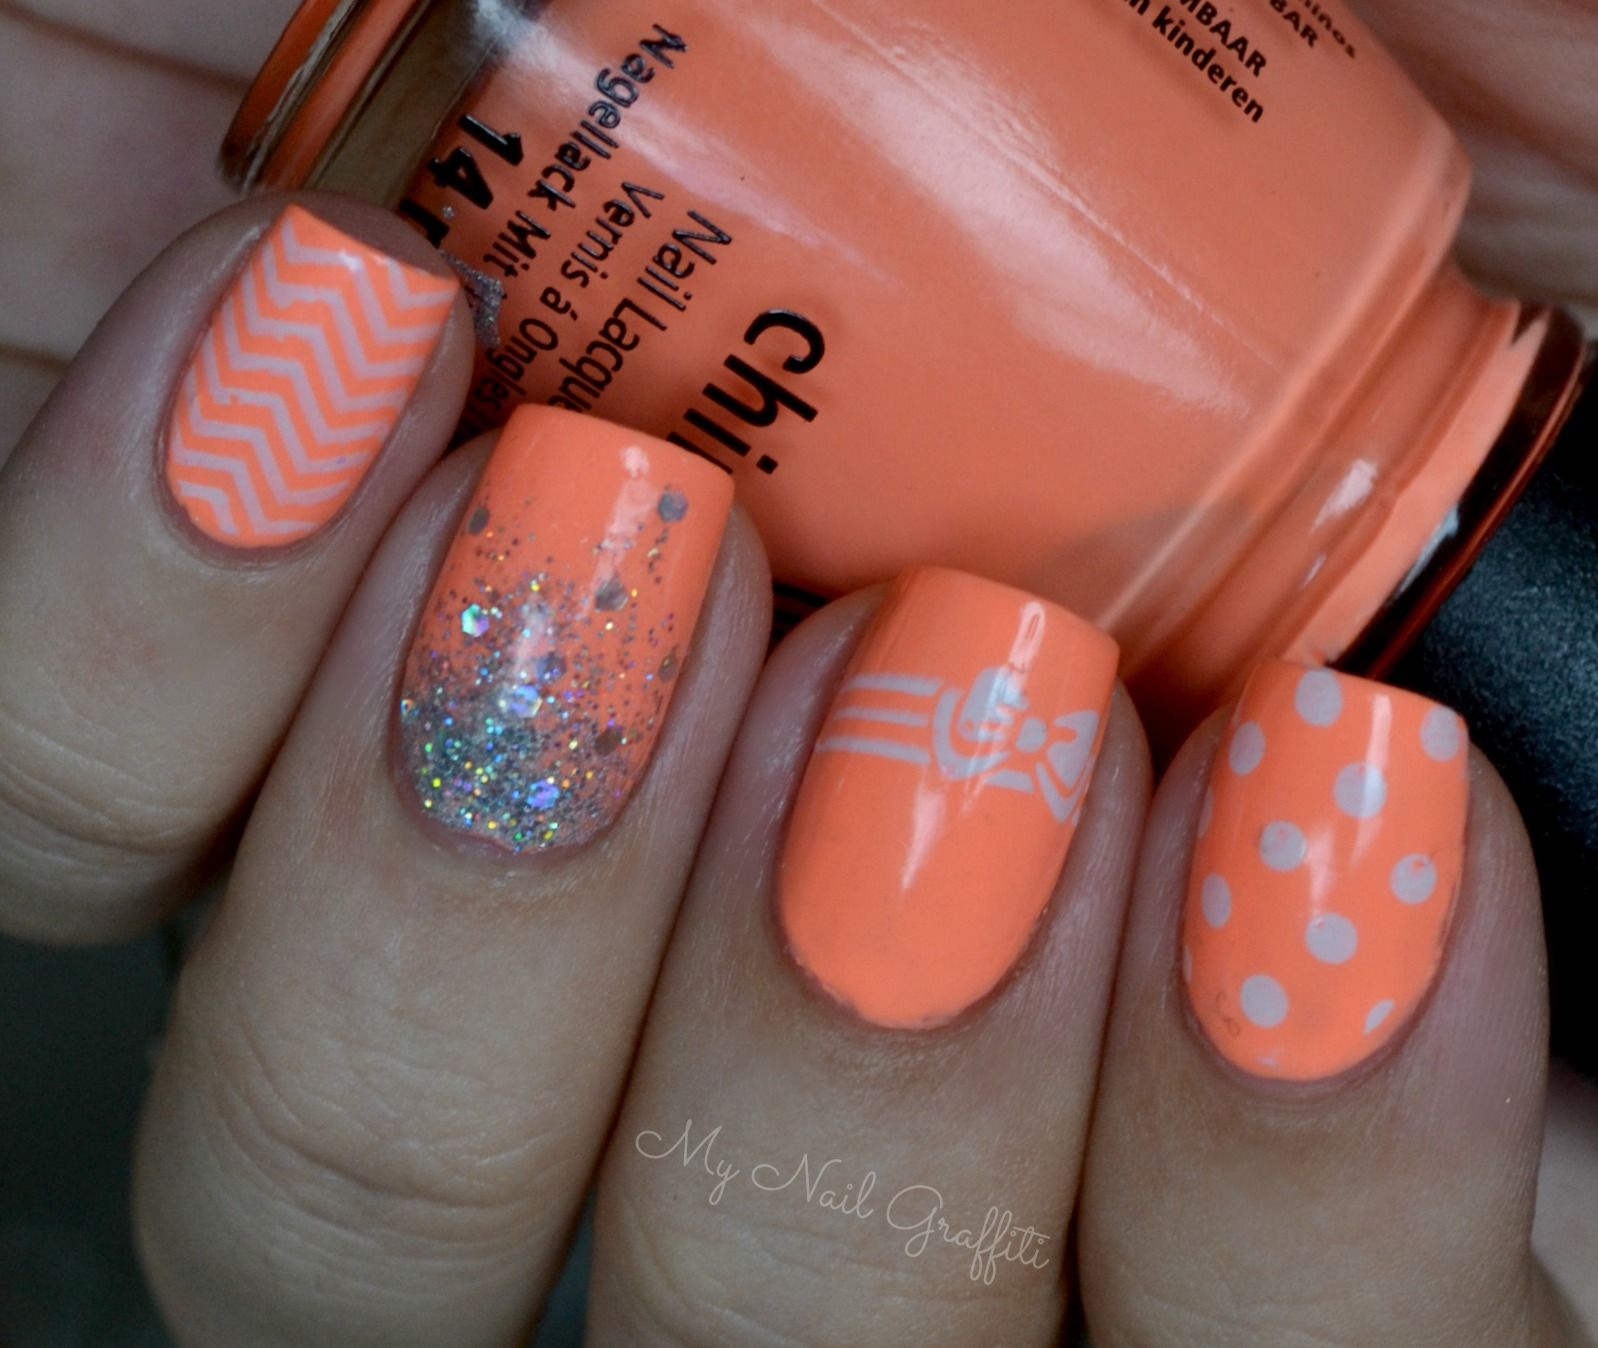 Peach Color Nail Designs - 16 Peach Nail Color Designs Images - Peach Color Nail Designs, Peach